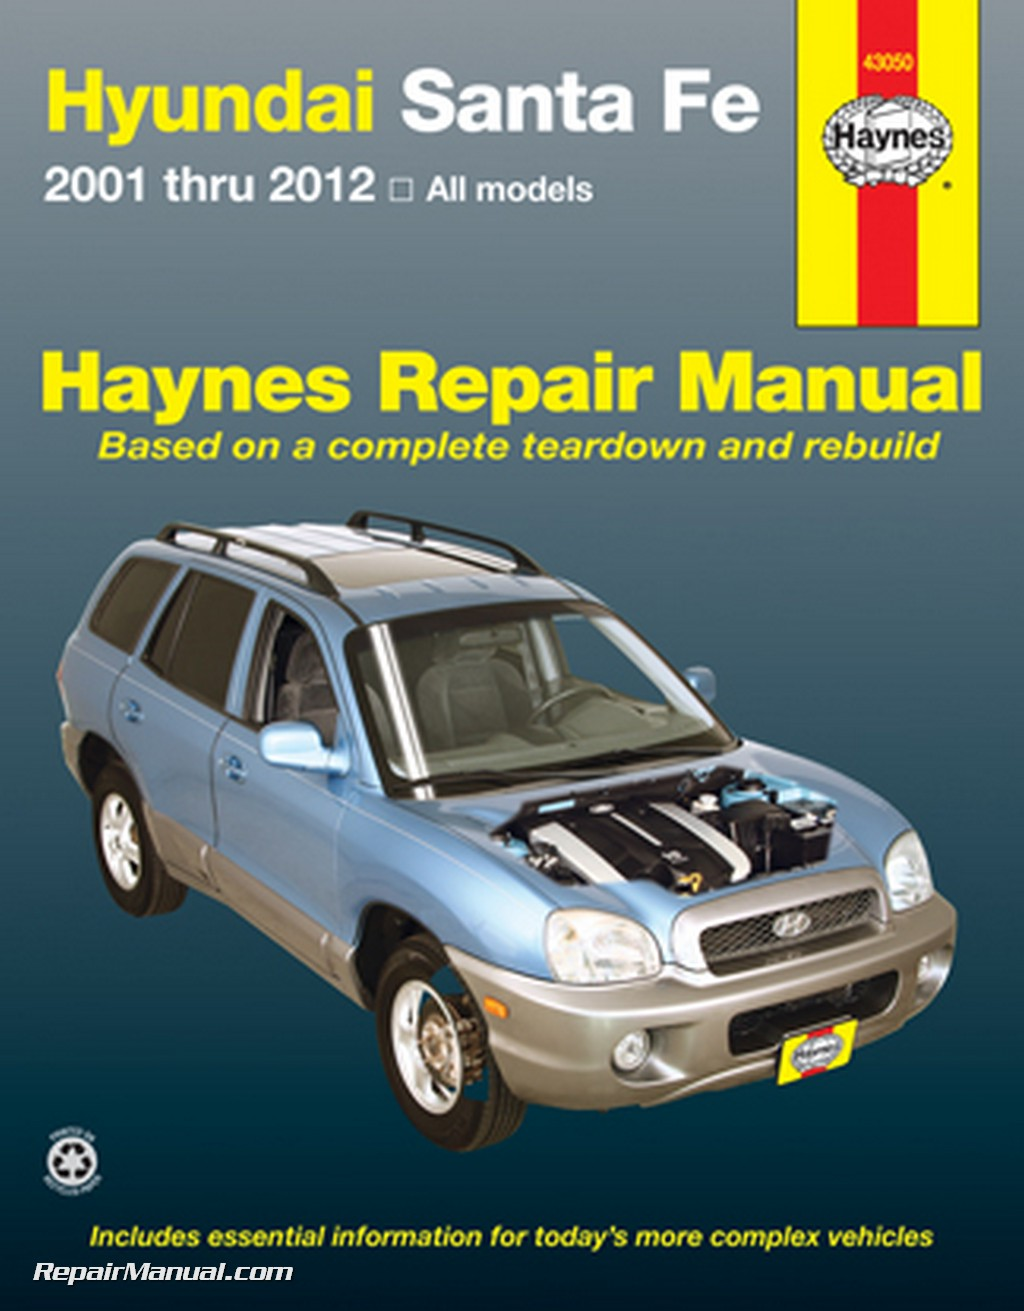 haynes hyundai santa fe 2001 2012 auto repair manual rh repairmanual com Subaru  Outback Manual Transmission Subaru Outback Service Manual PDF